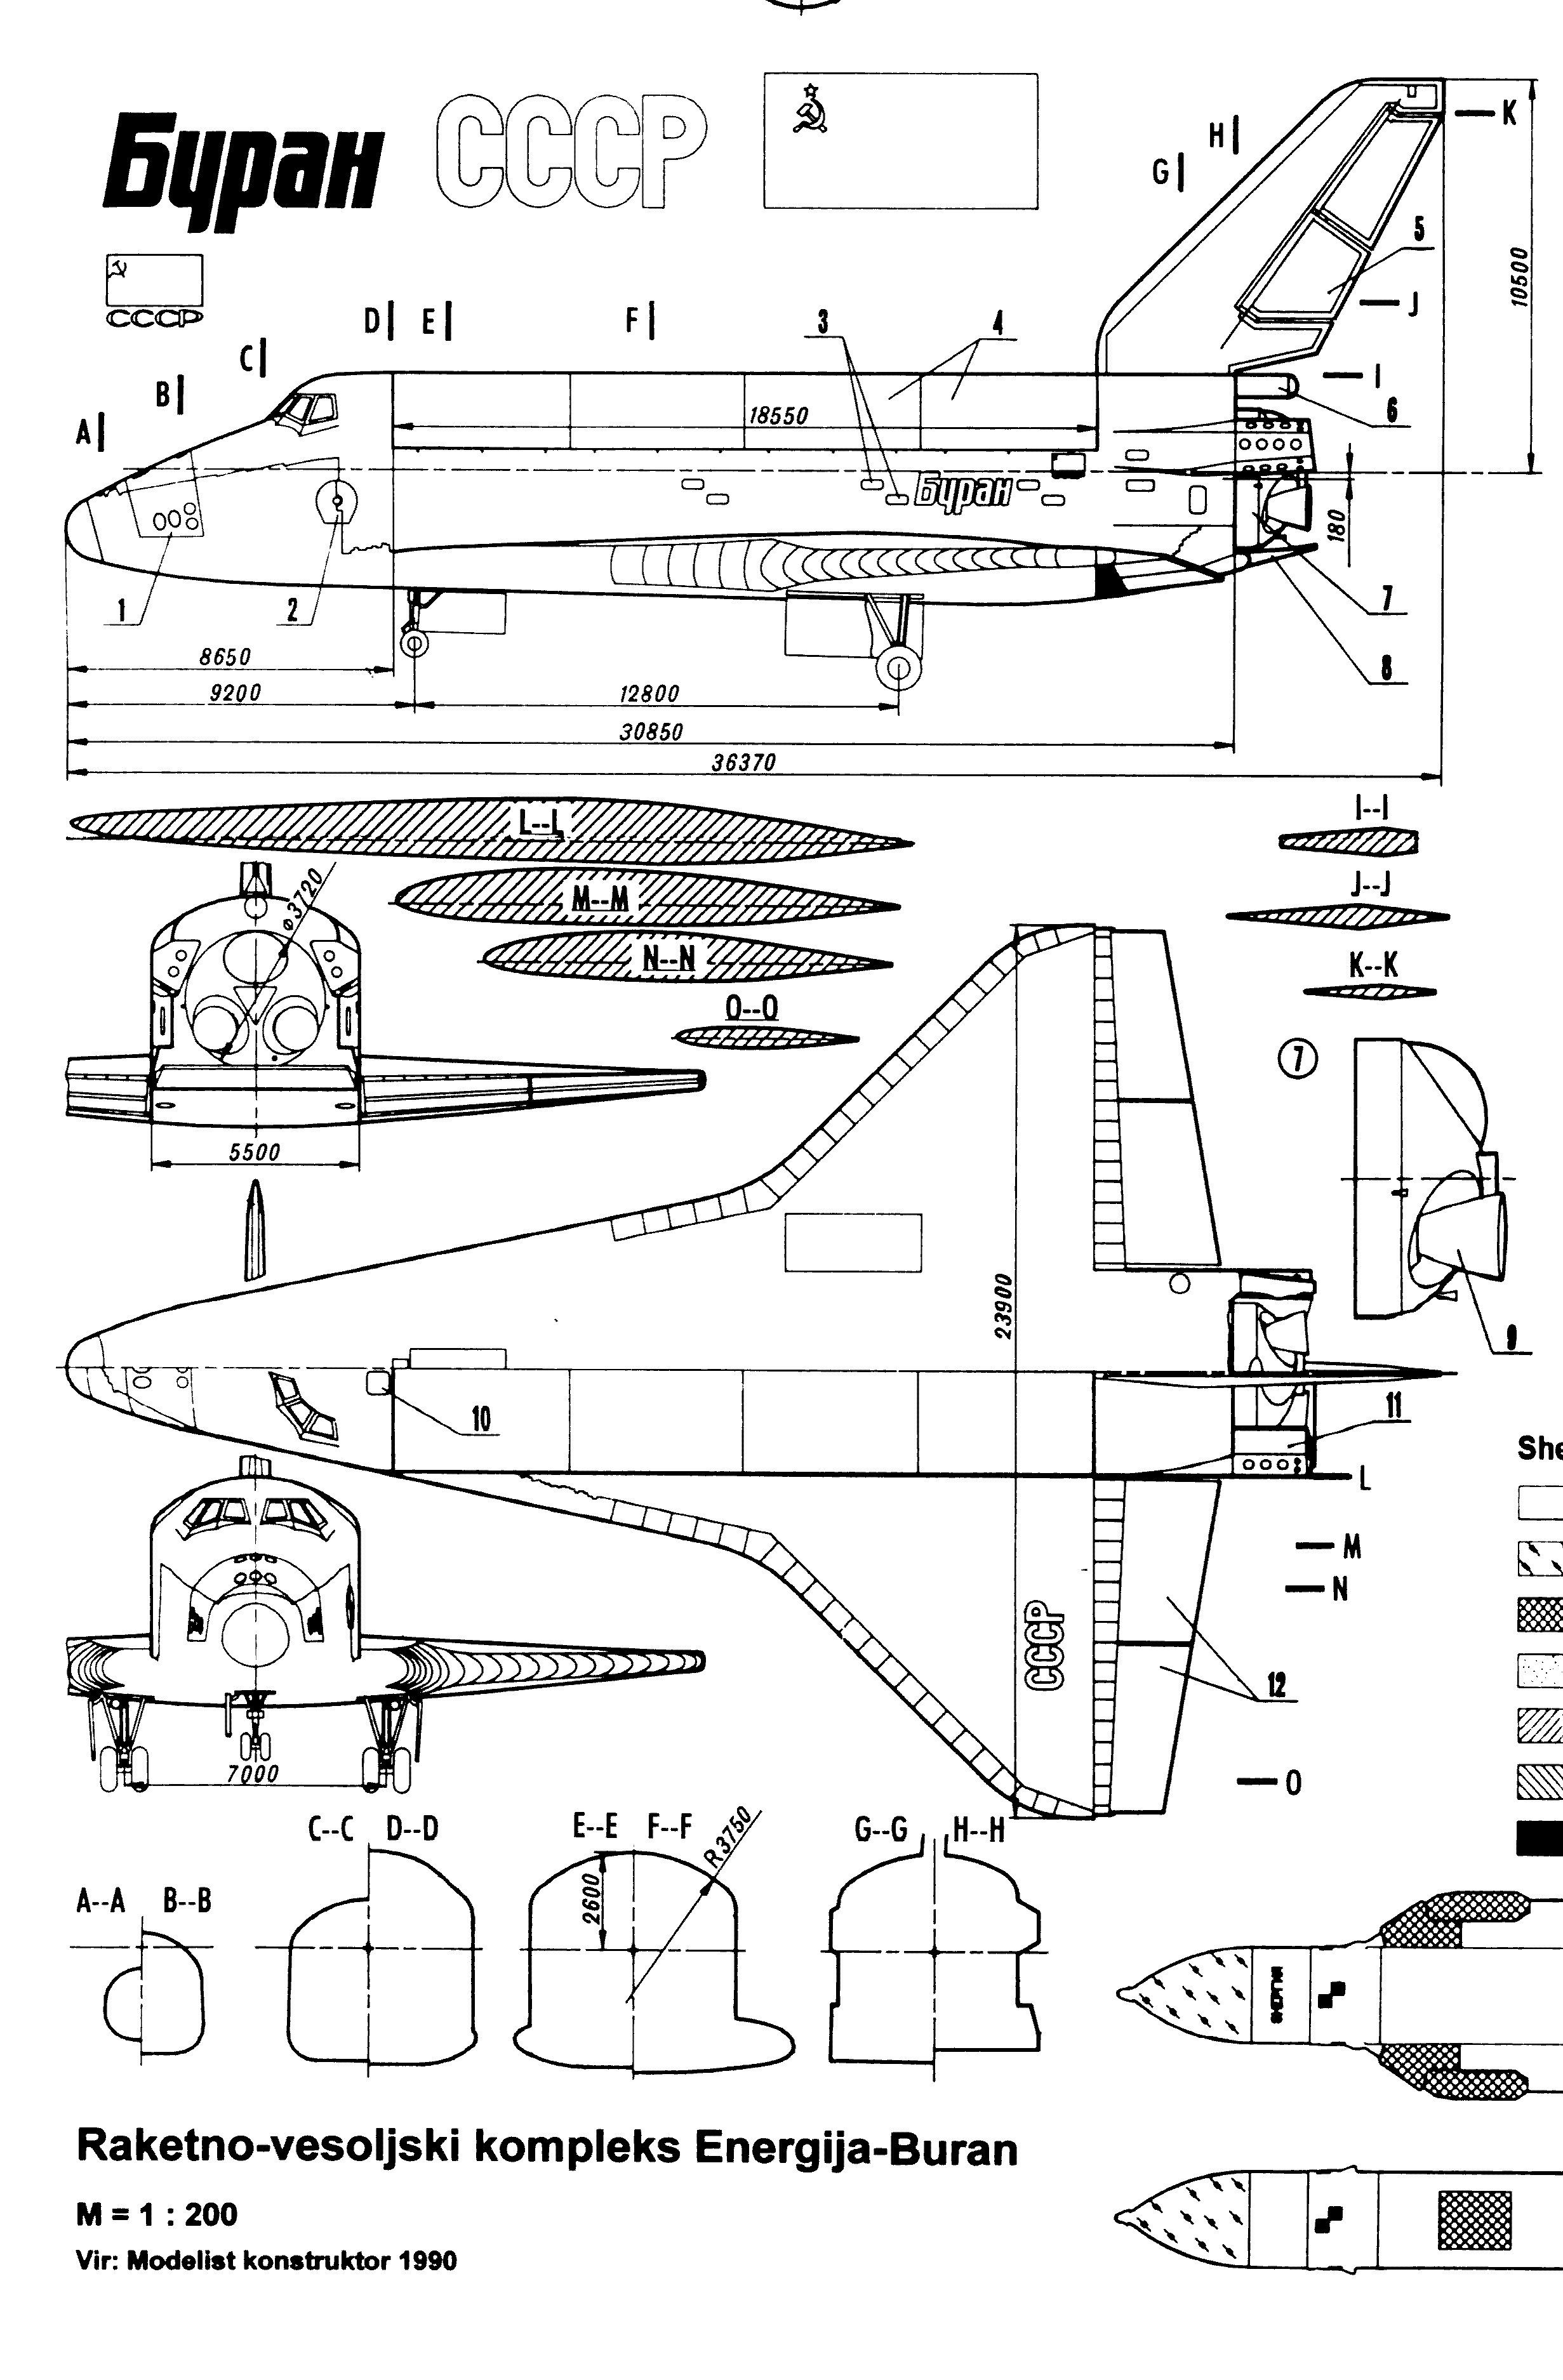 small resolution of click for view big size 2462x3750 drawing narrative new space space shuttle nose cone diagram page 2 pics about space